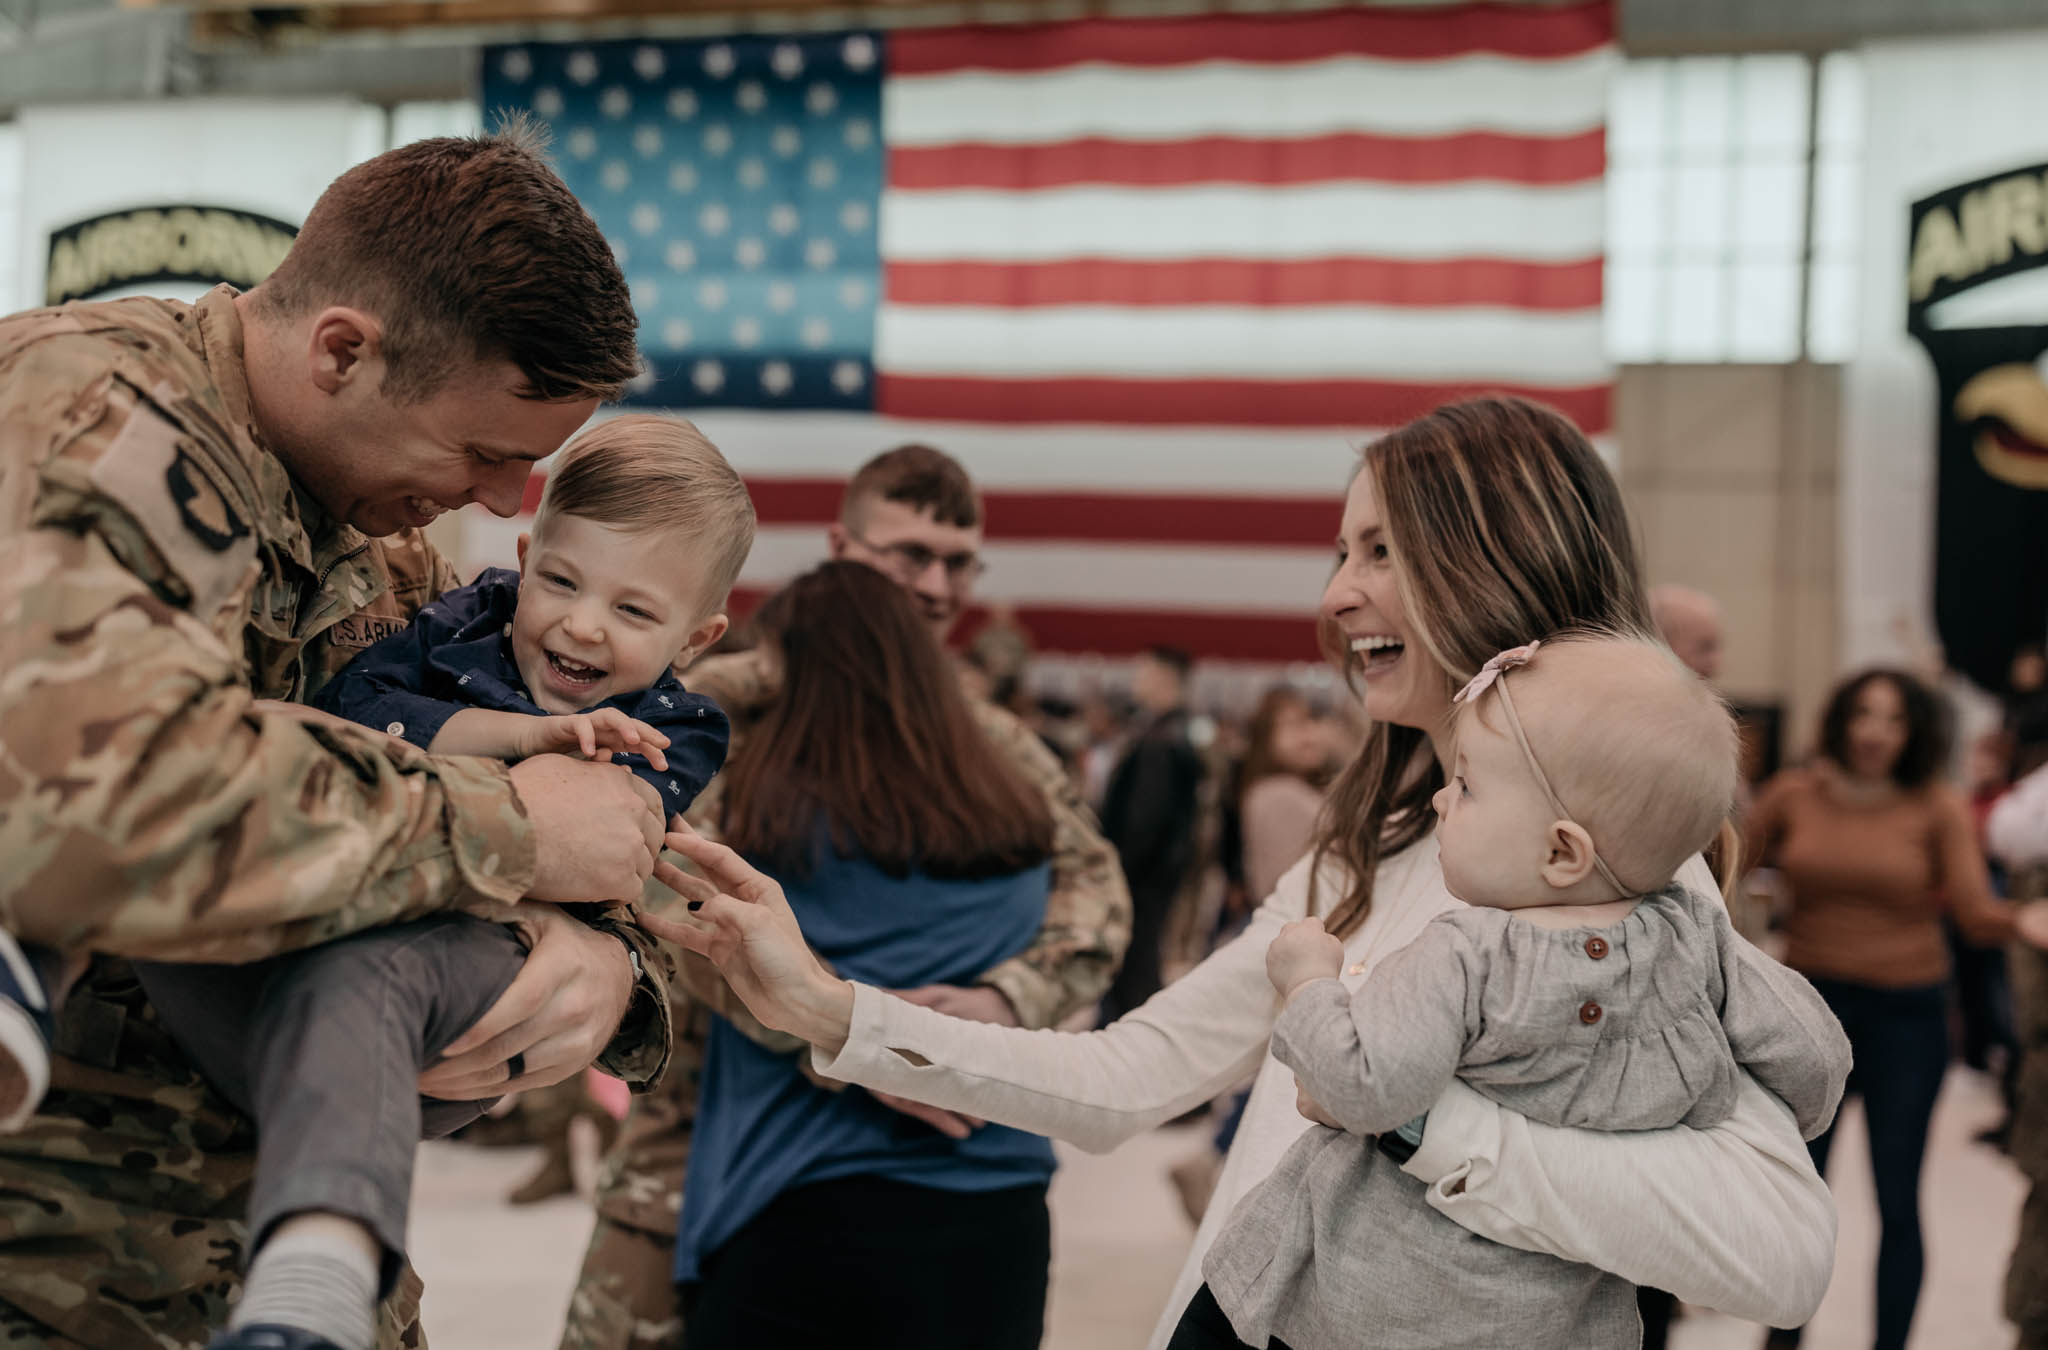 Family During Military Homecoming Ceremony